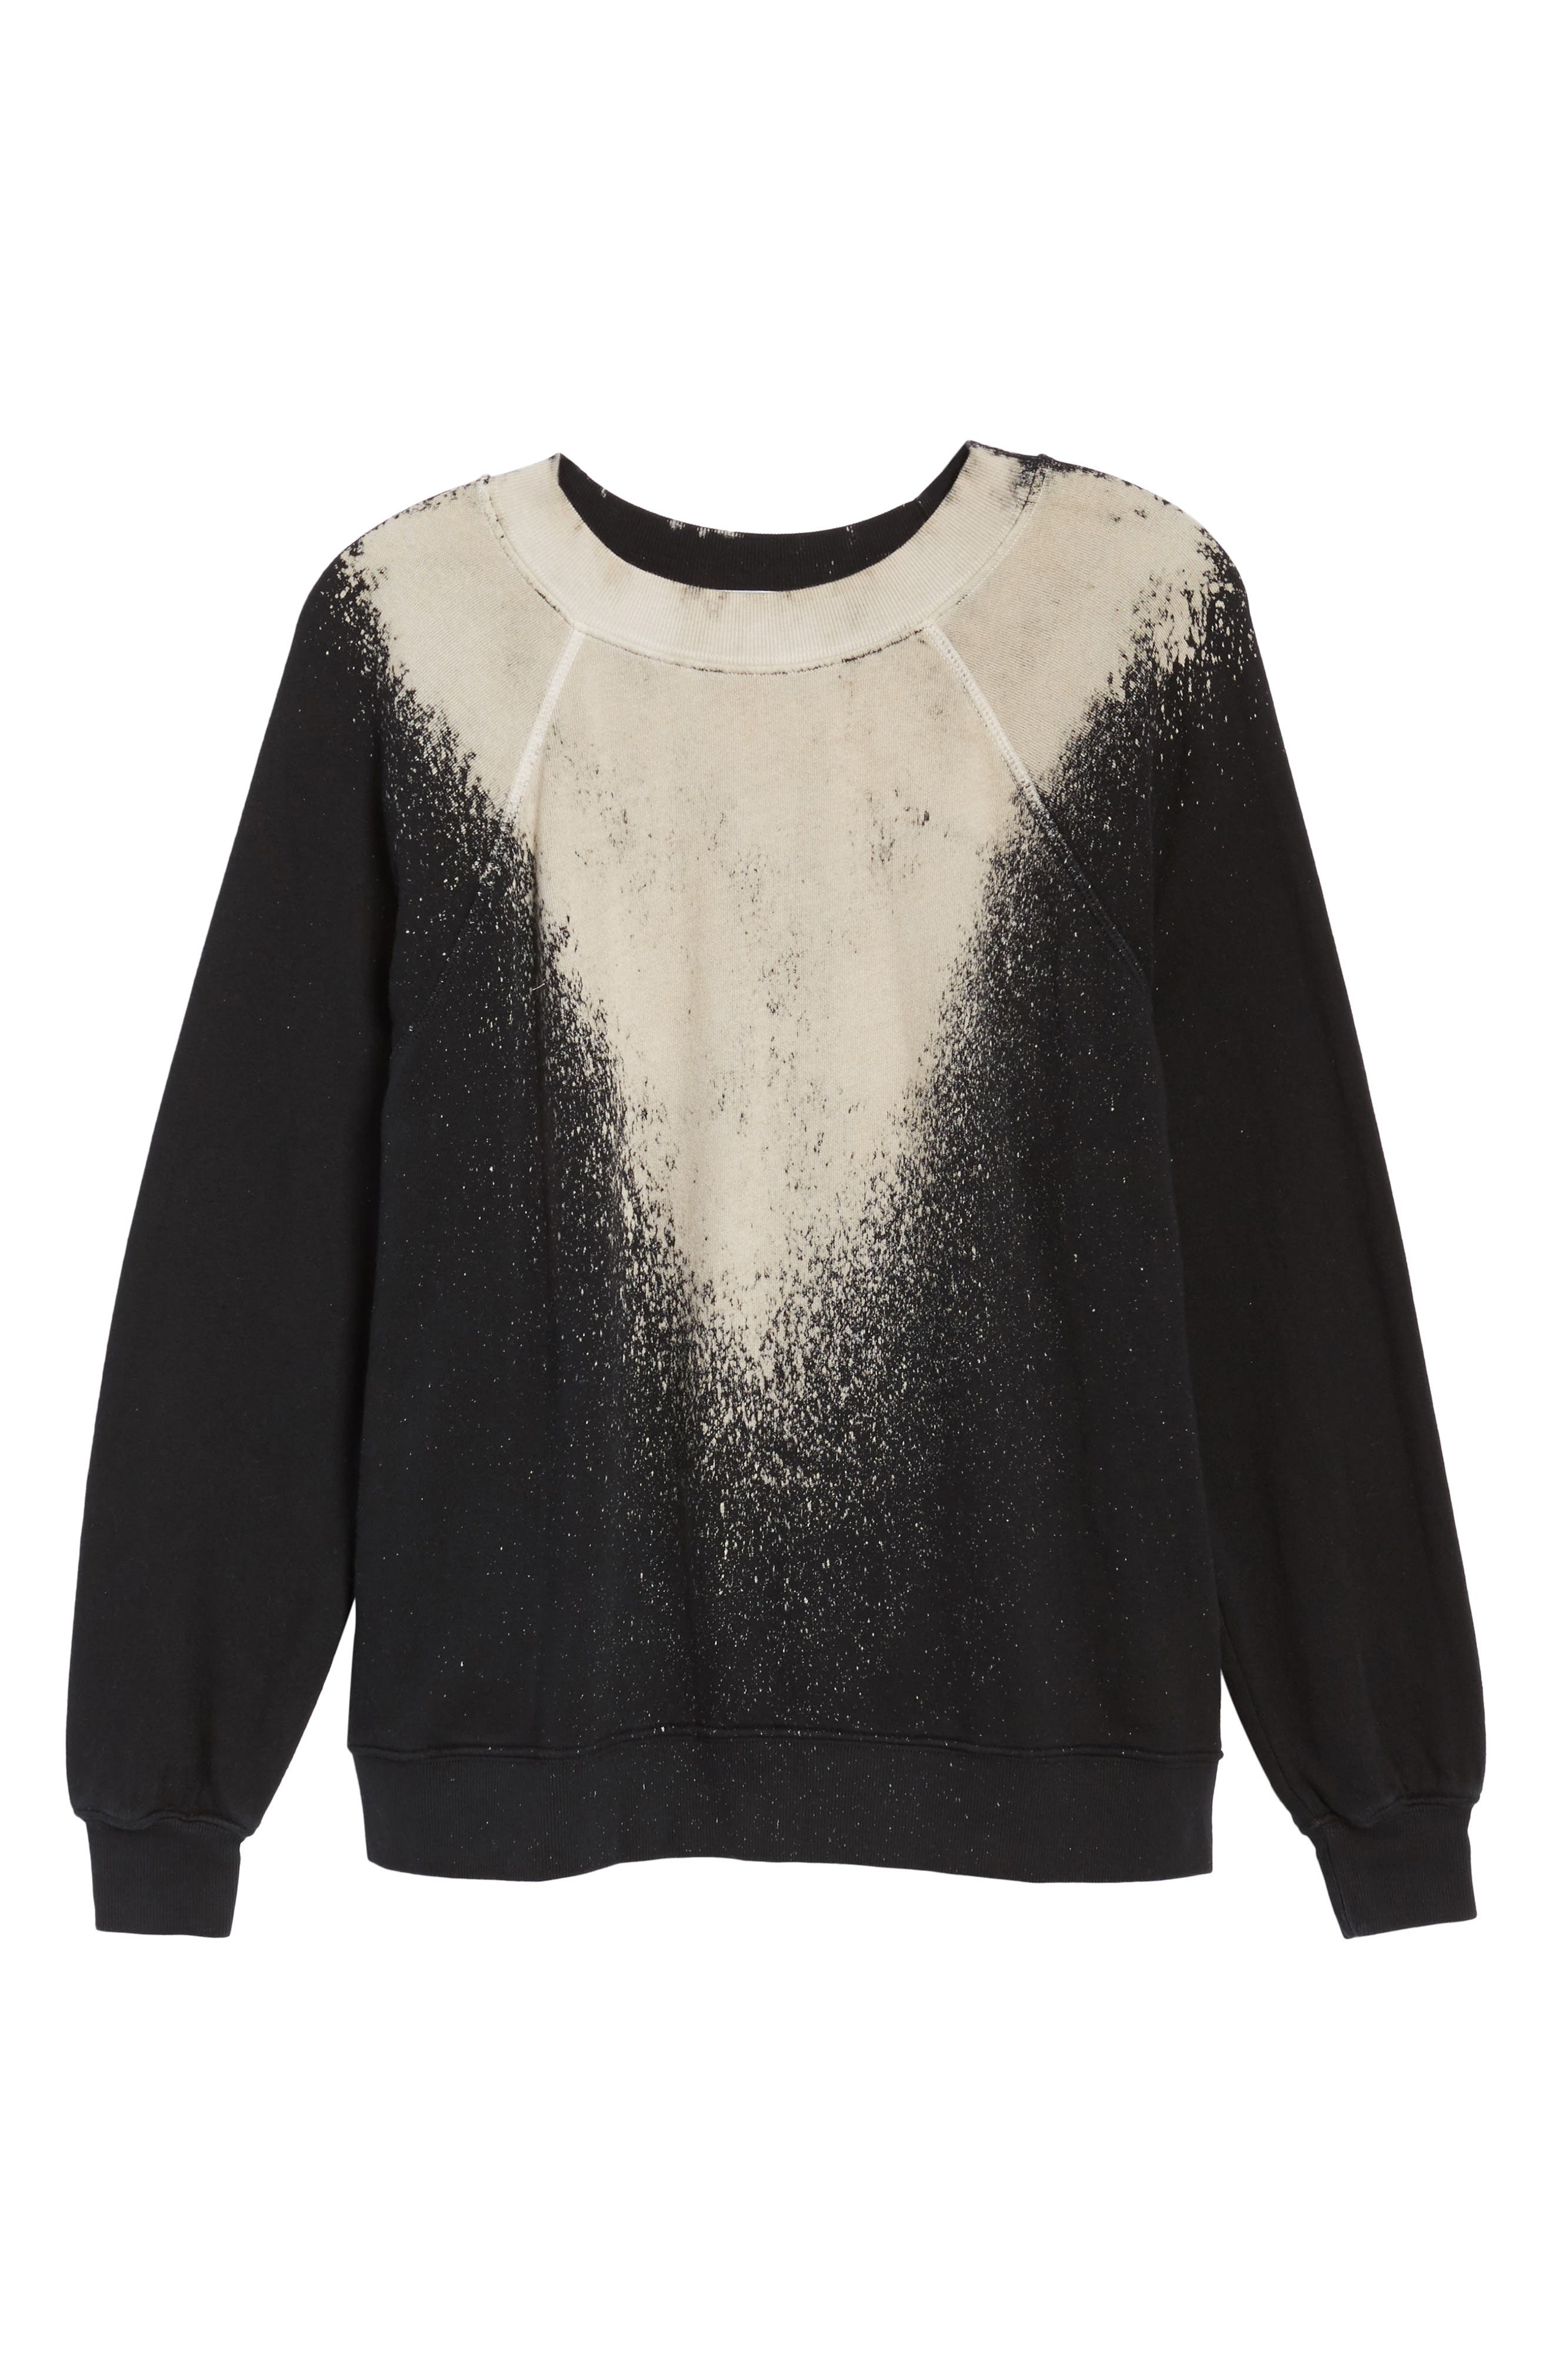 Stardust - Sommers Sweatshirt,                             Alternate thumbnail 6, color,                             Stardust Wash